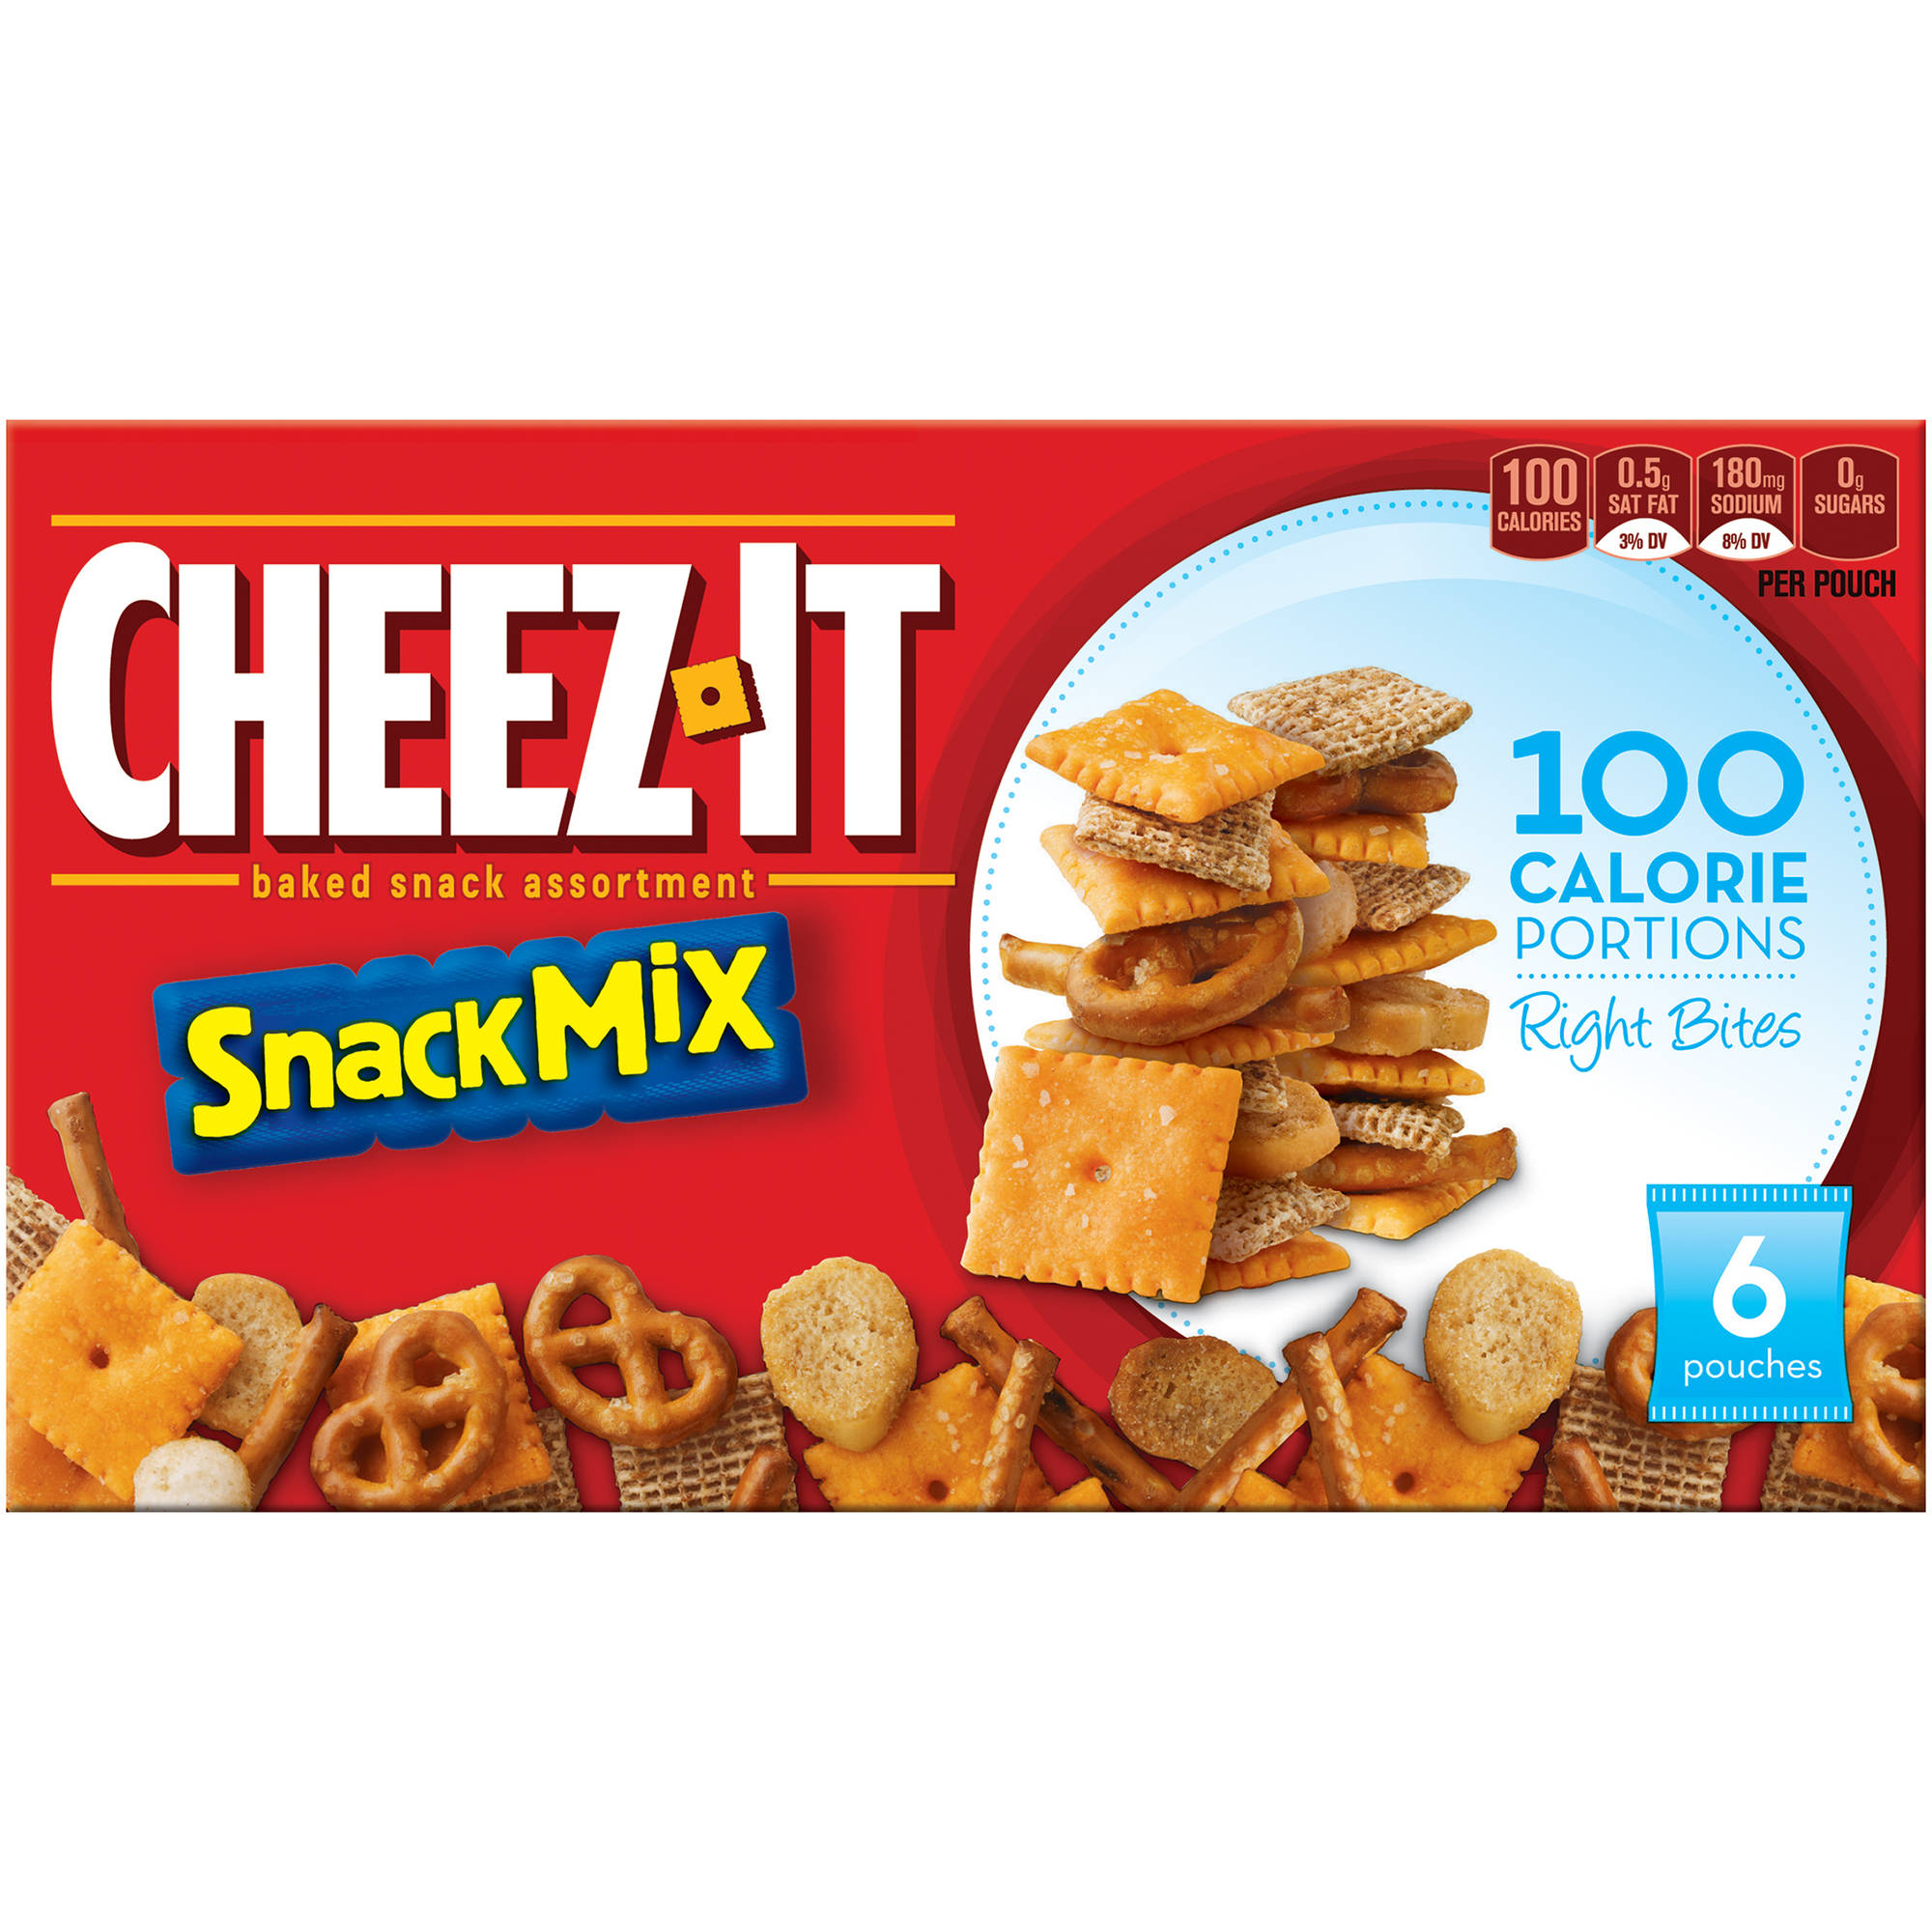 Right Bites 100 Calorie Cheez-It Baked Snack Mix, 6 count